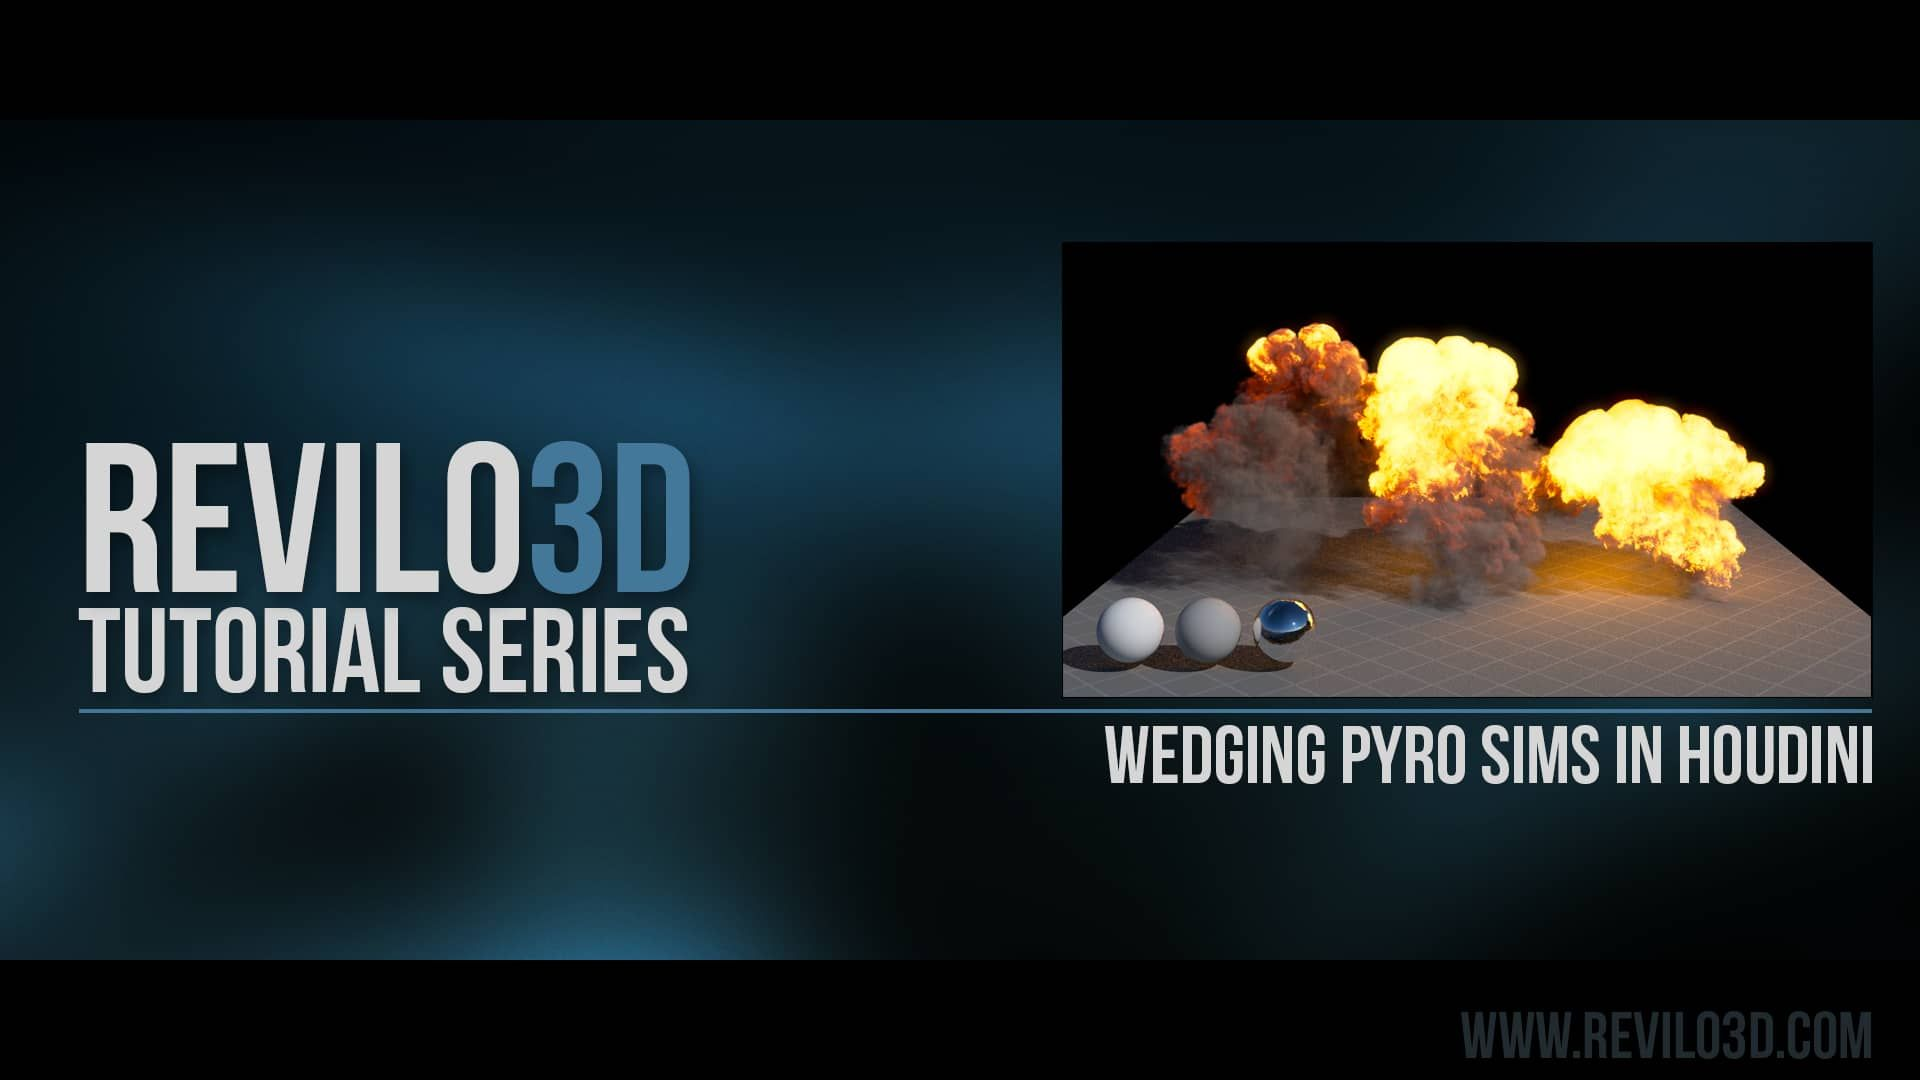 Revilo3d Tutorial Series: Wedging Pyro Sims In Houdini | Tutorials